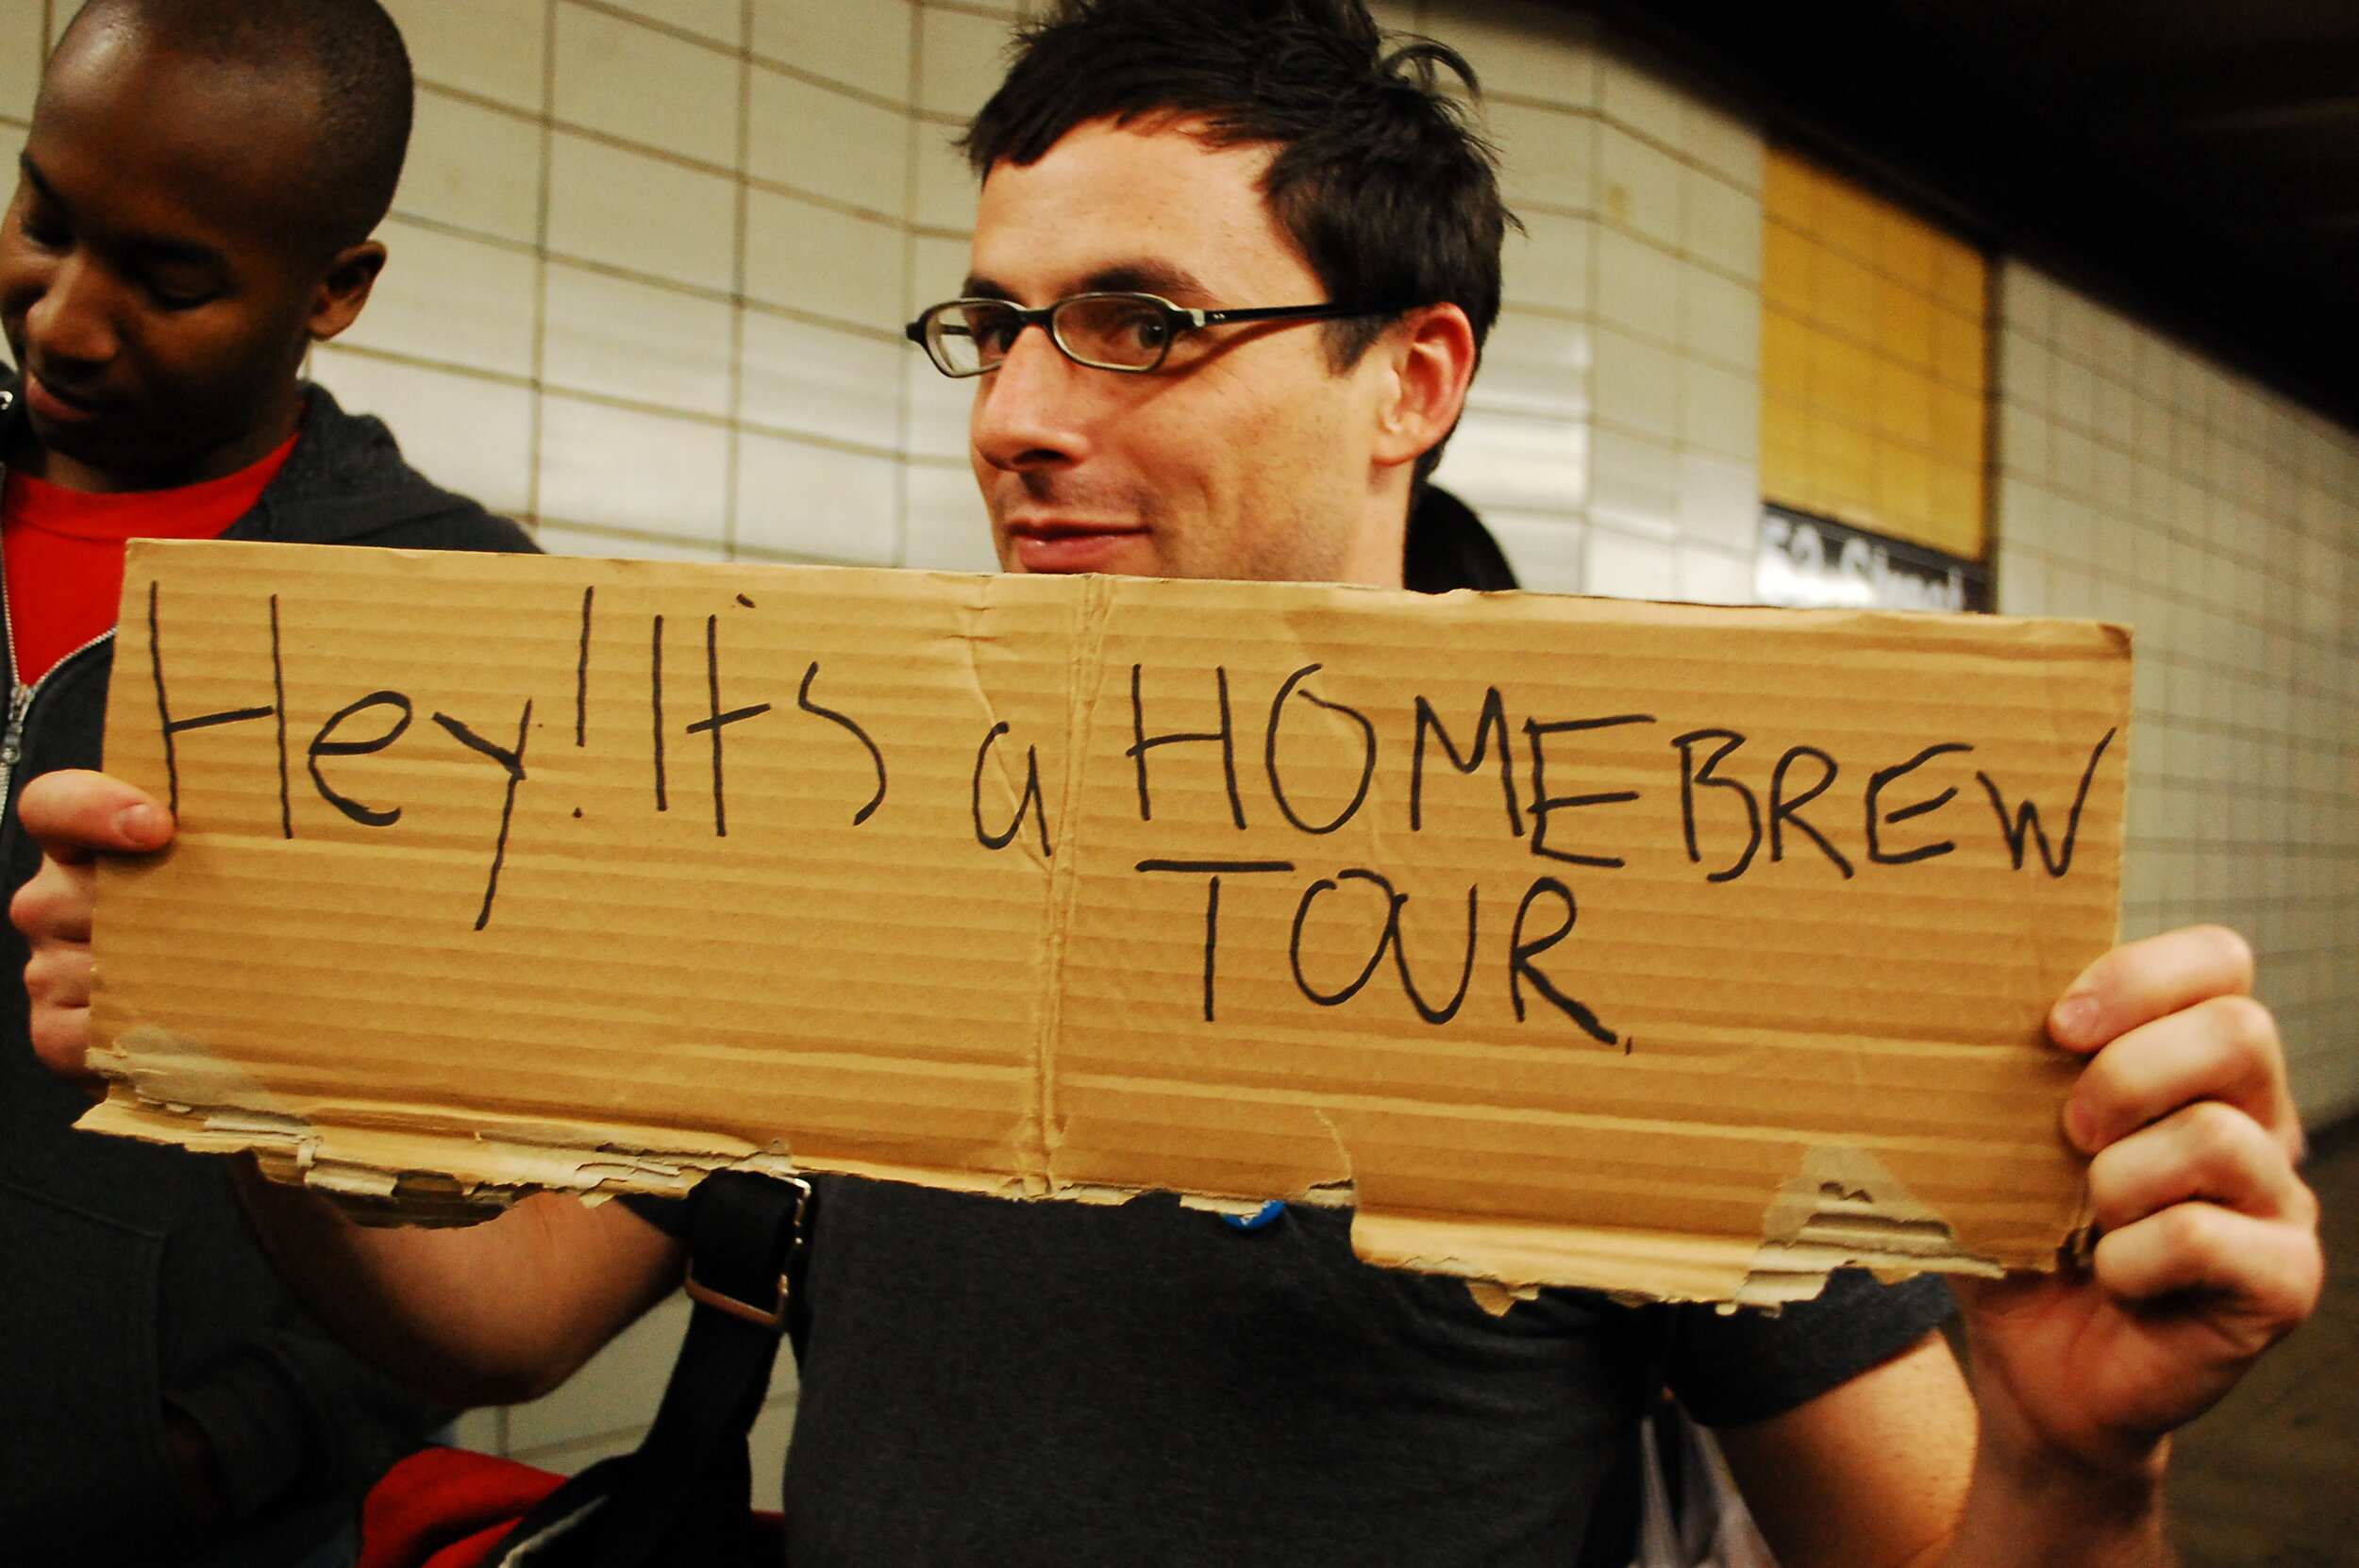 Oh dang! Has it really been 10 years since I started the homebrew tours?